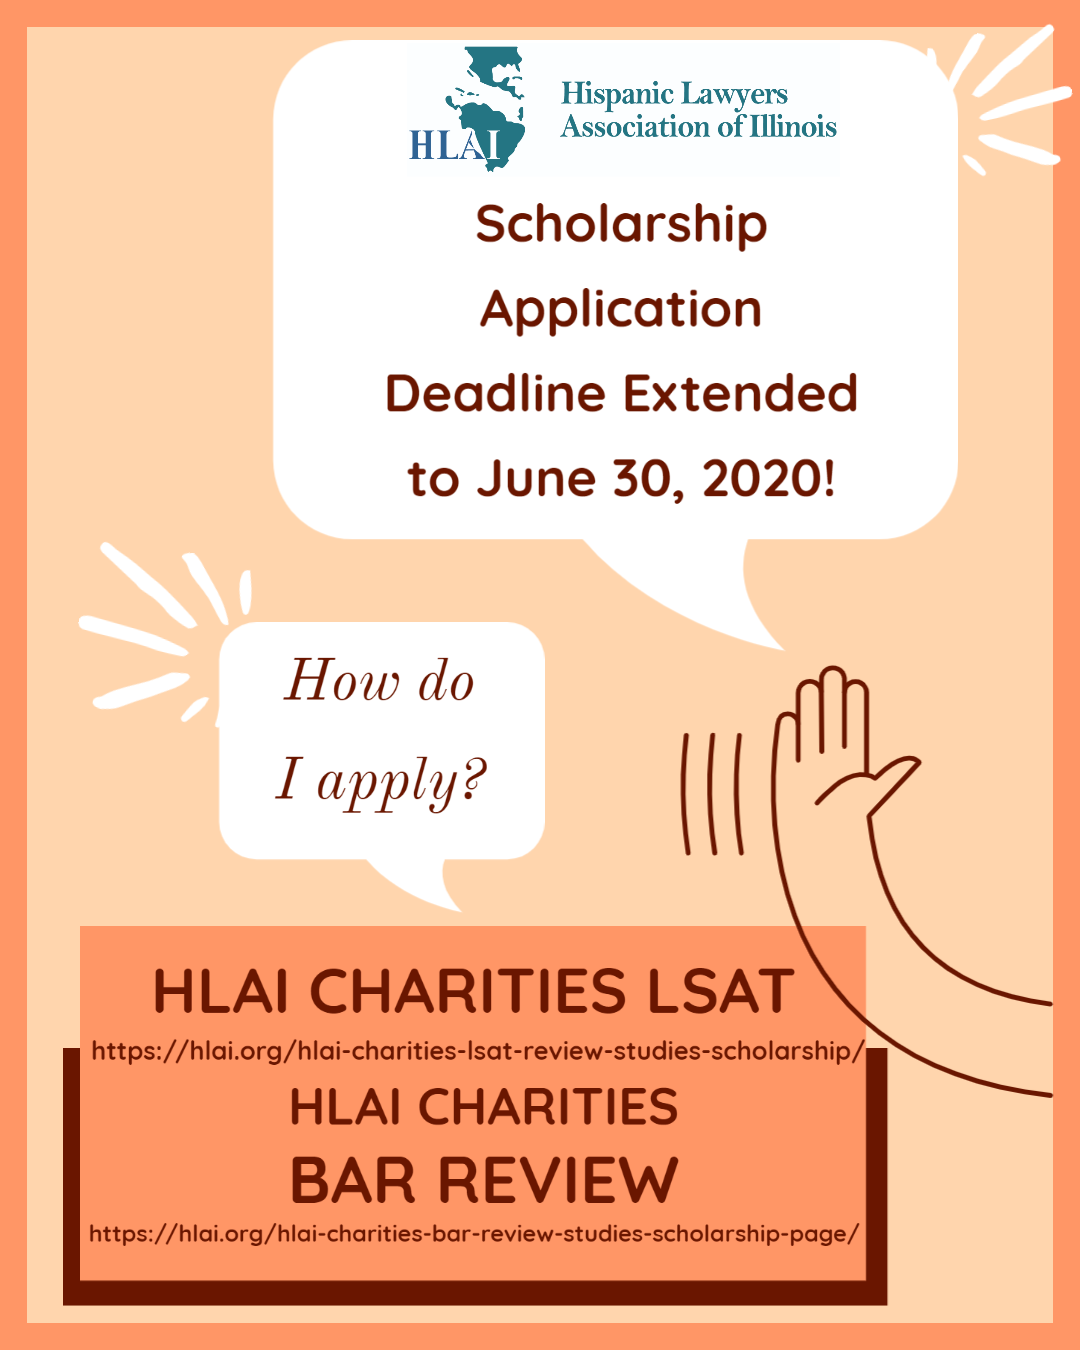 HLAI Charities Scholarship Applications Due Today!